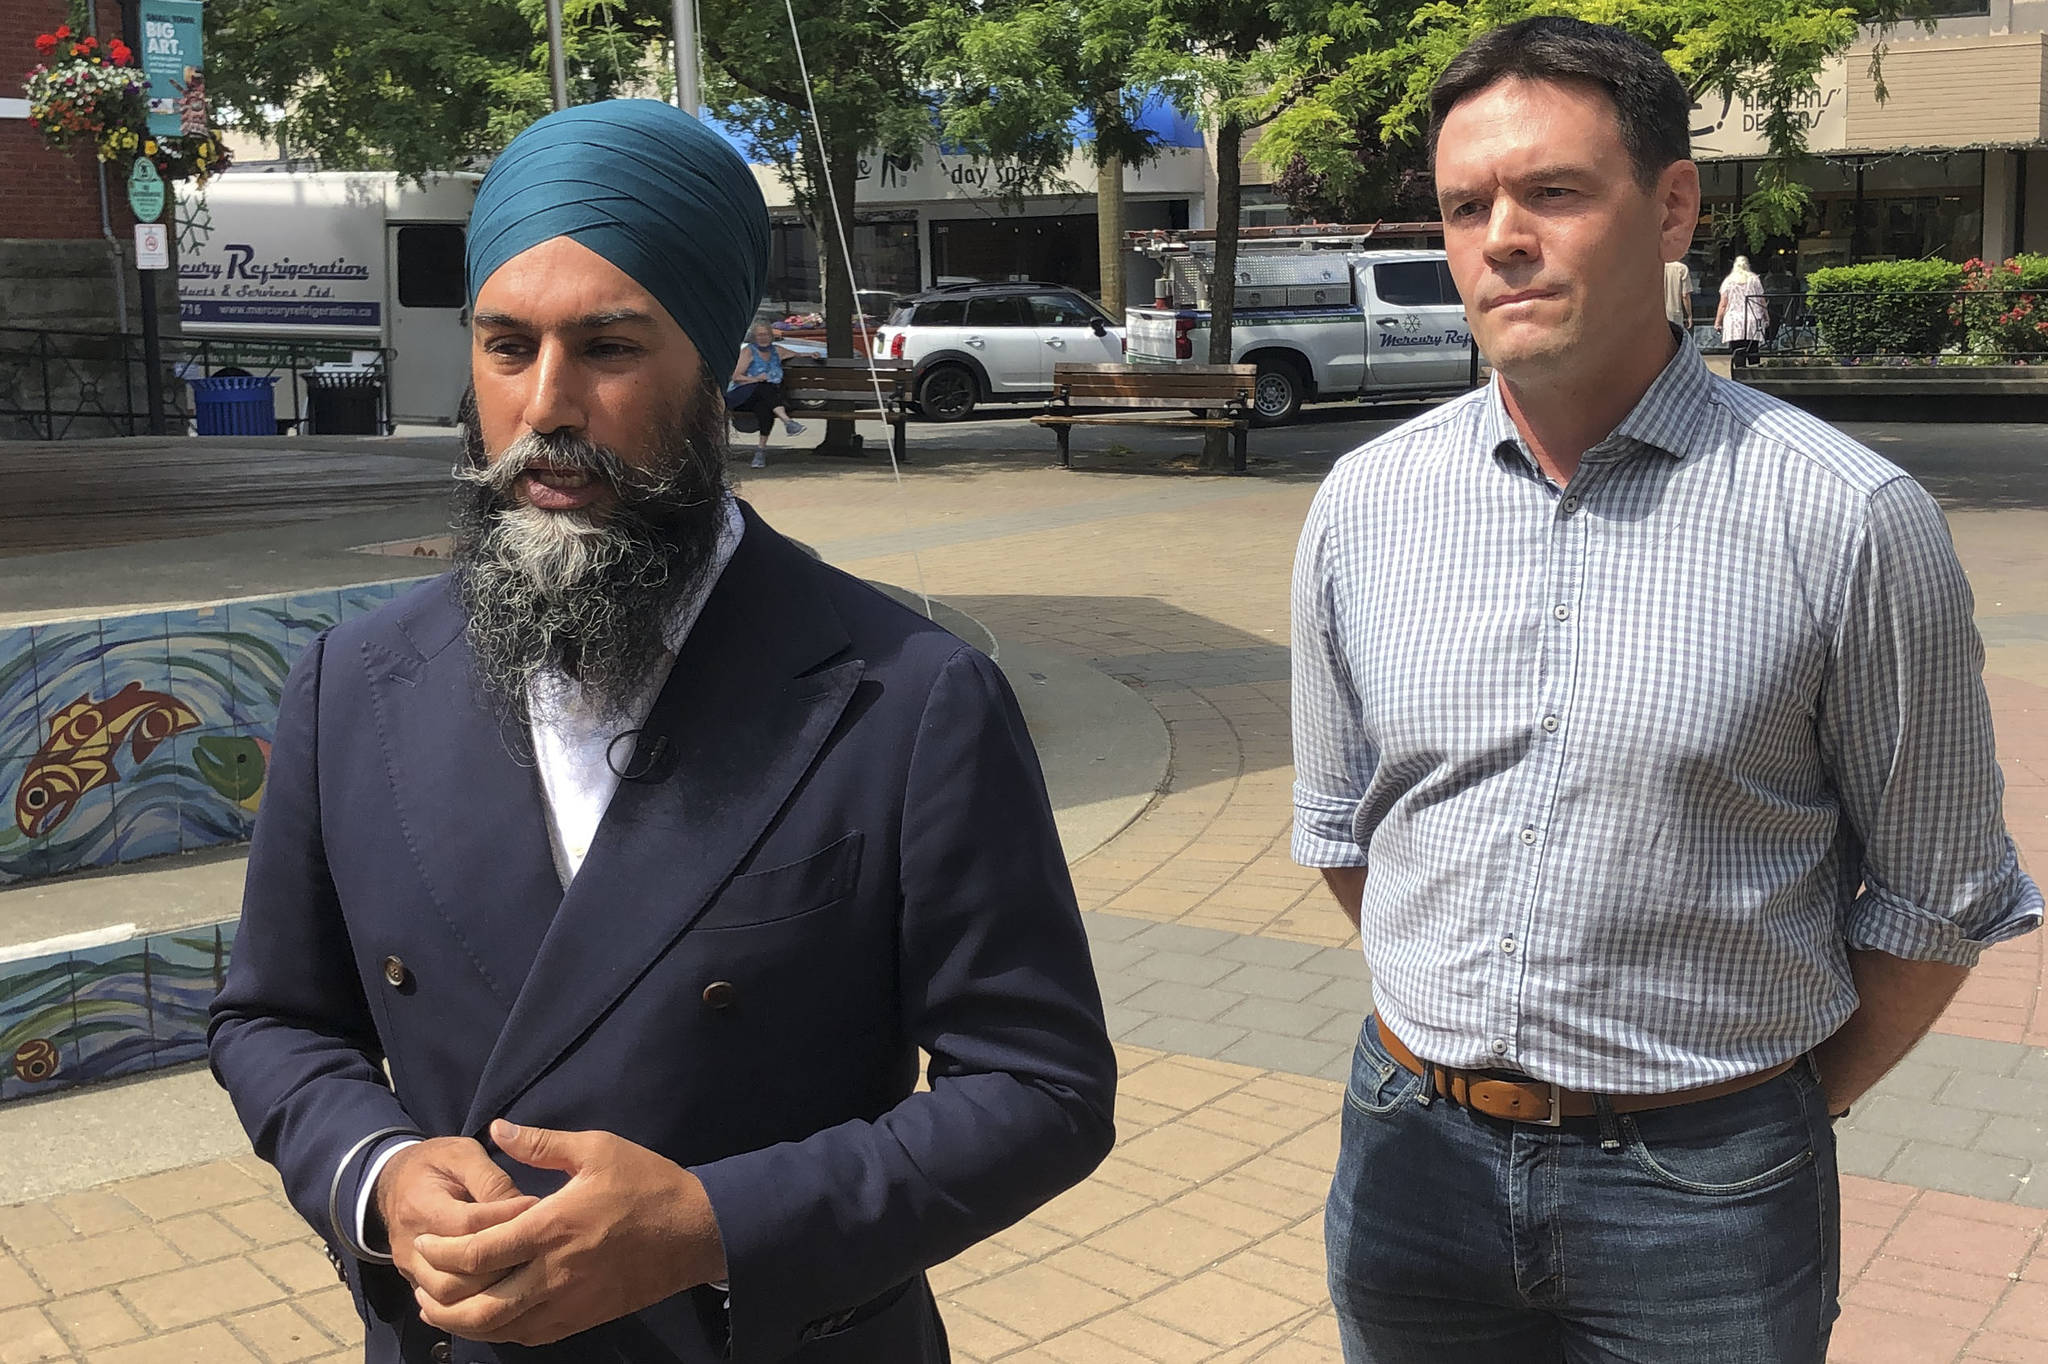 Federal NDP leader Jagmeet Singh and Cowichan-Malahat-Langford MP Alistair MacGregor speak with the media in Duncan, B.C. on Thursday, July 8. (Kevin Rothbauer/Citizen)